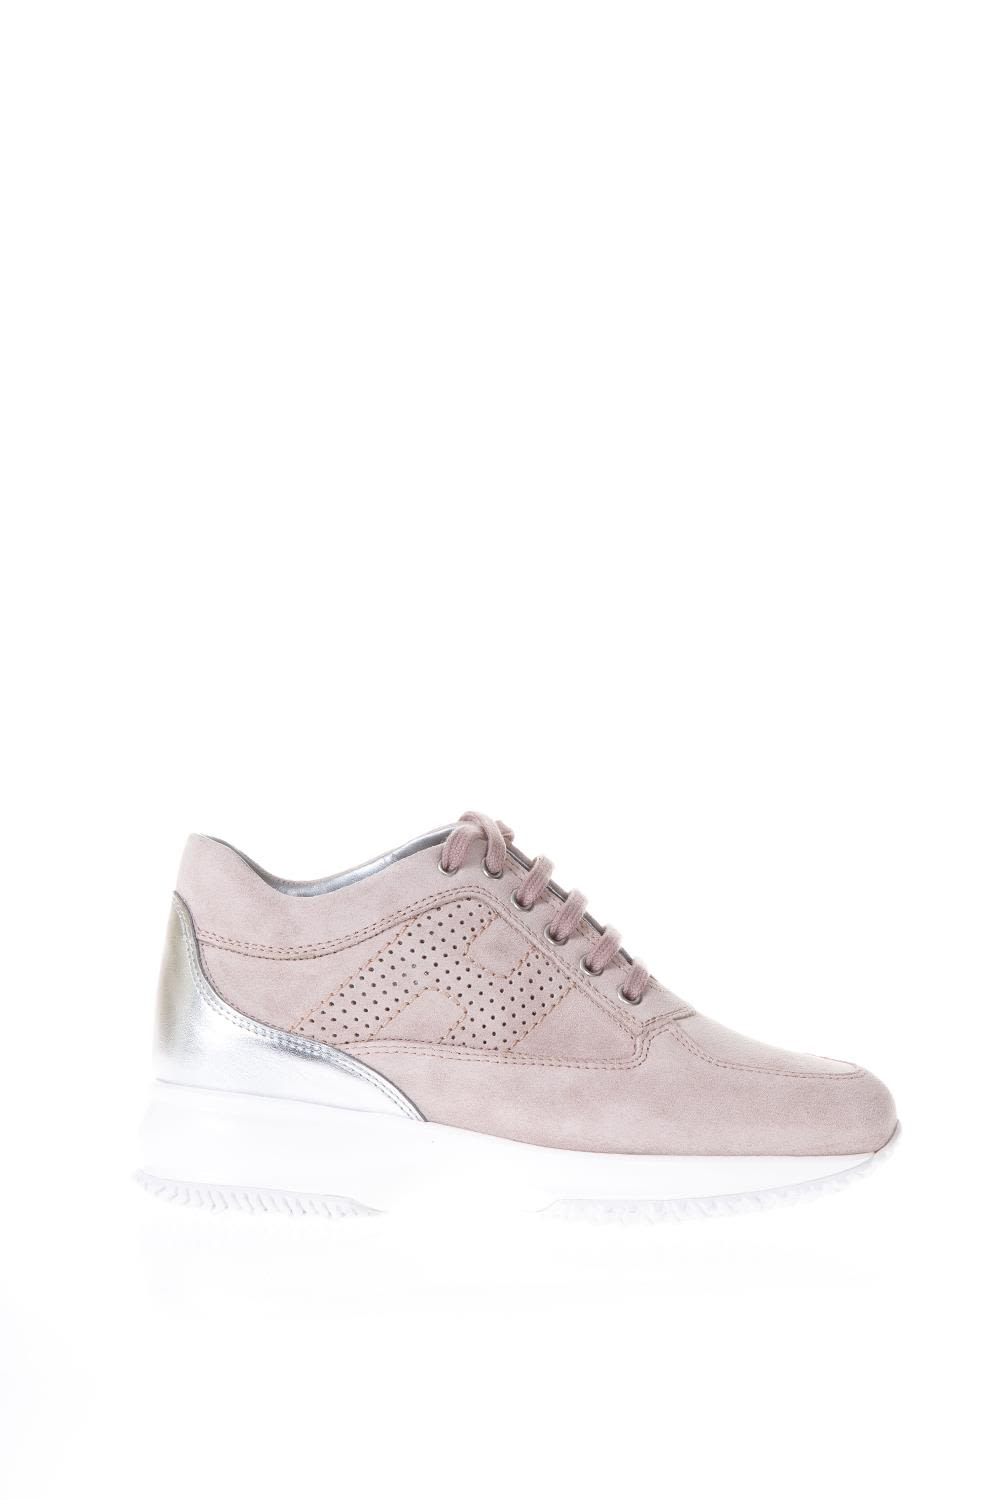 Hogan Interactive Pink Suede & Leather Sneakers Sale Official Site GW3gCEIf